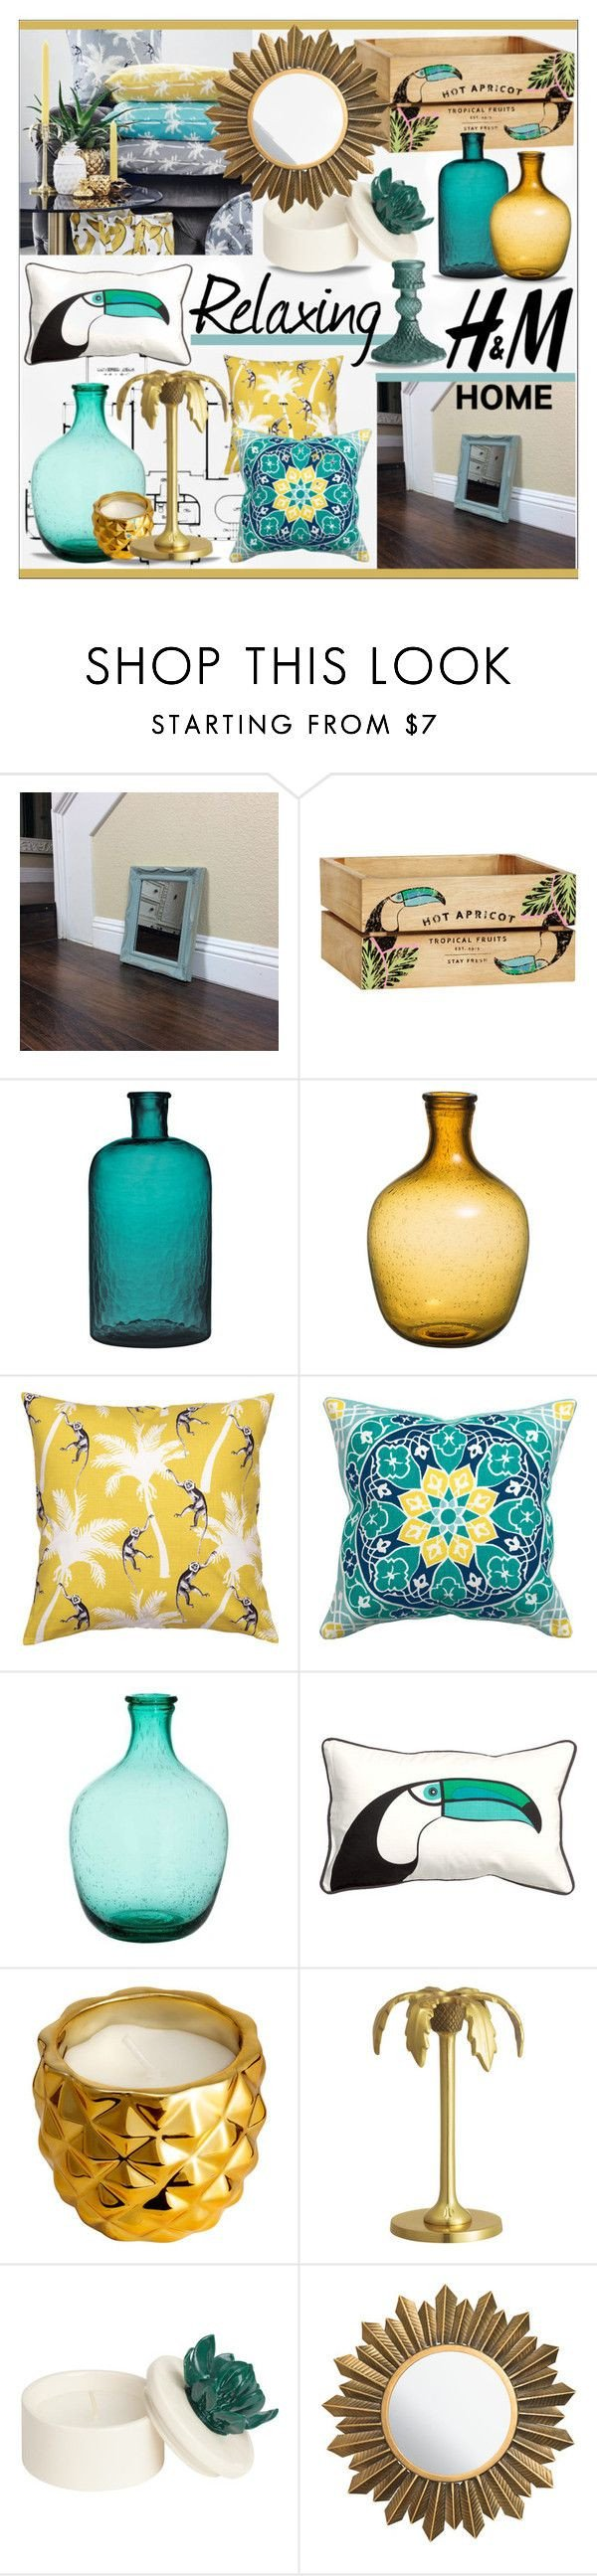 Yellow and Turquoise Home Decor Luxury H & M Home Turquoise & Yellow Living Room Decorating